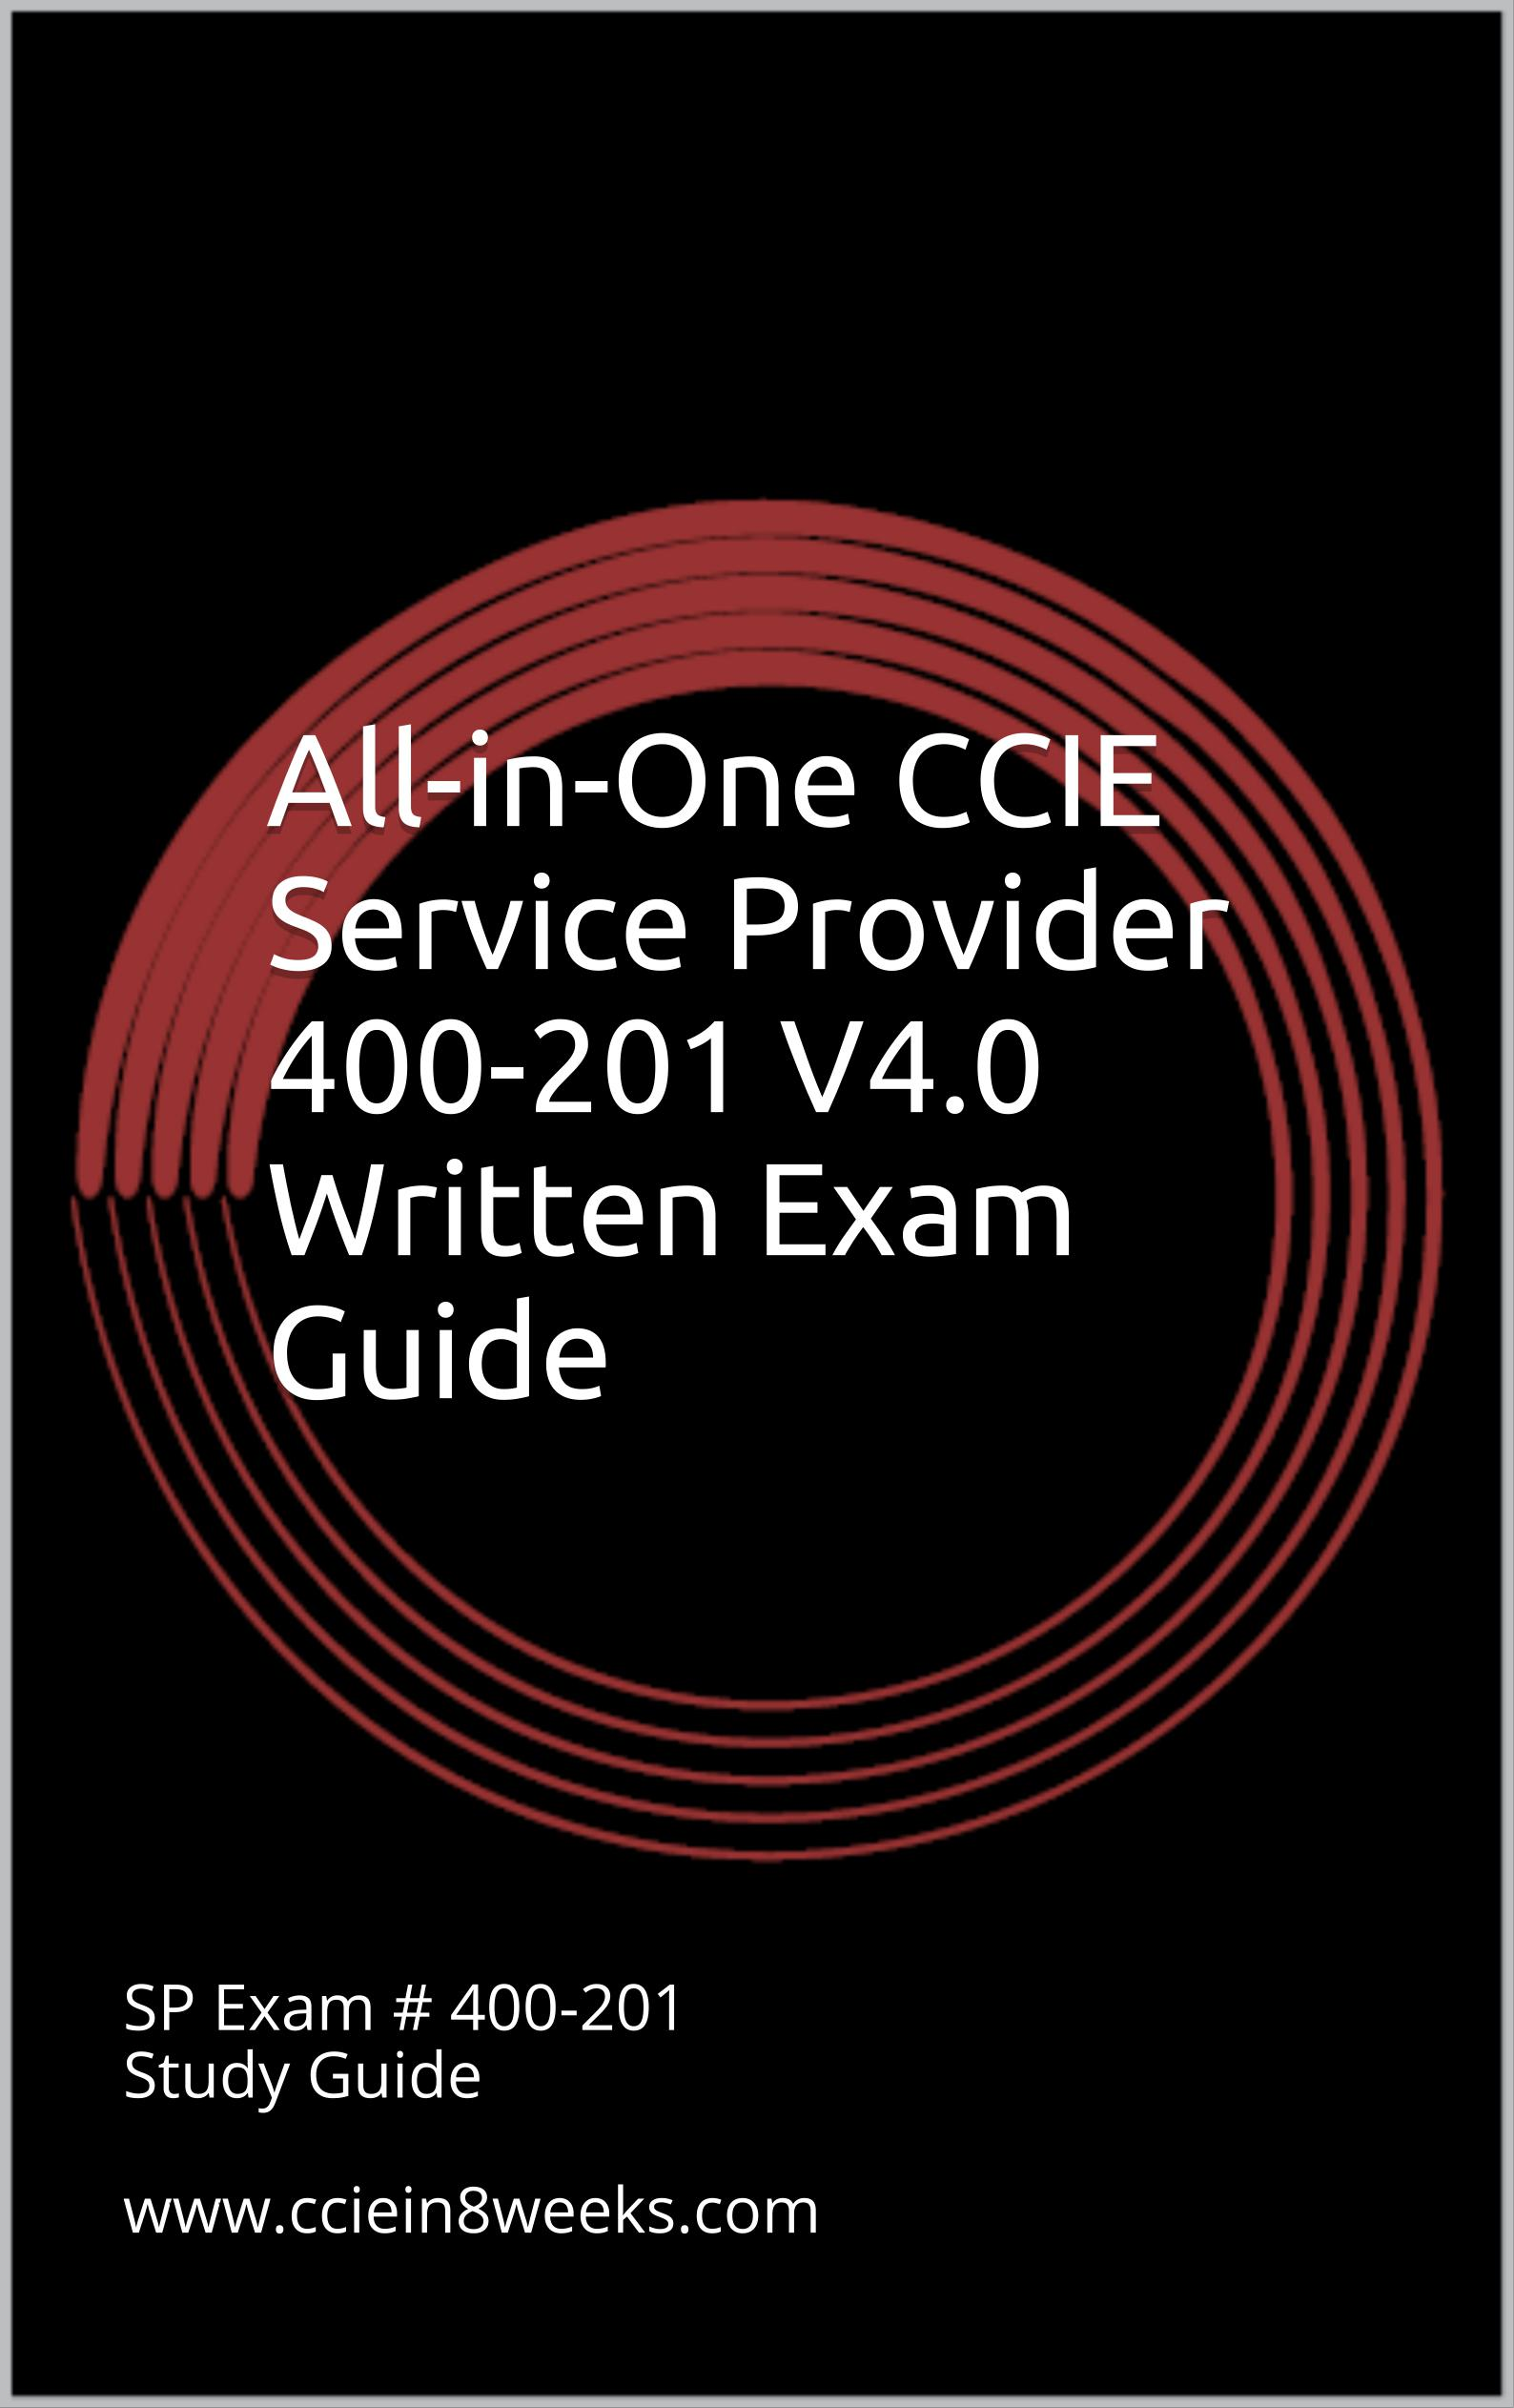 CCIE Written Exams For CISCO Certification and Recertification